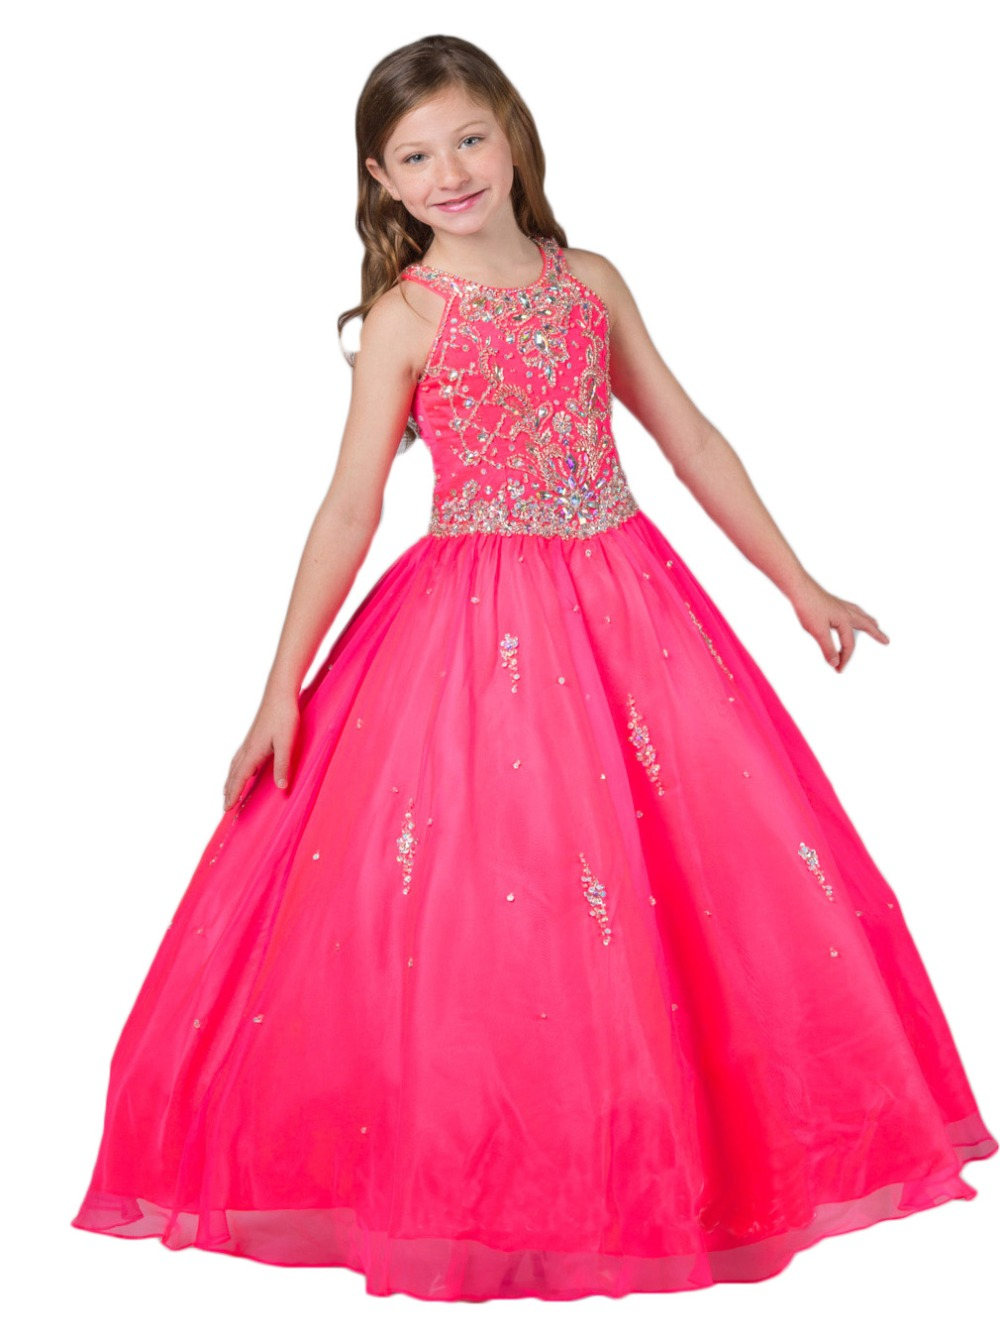 Hot Stock Pink Beads Flower Girl Dress Formal Pageant Prom Ball Gowns Size4-14